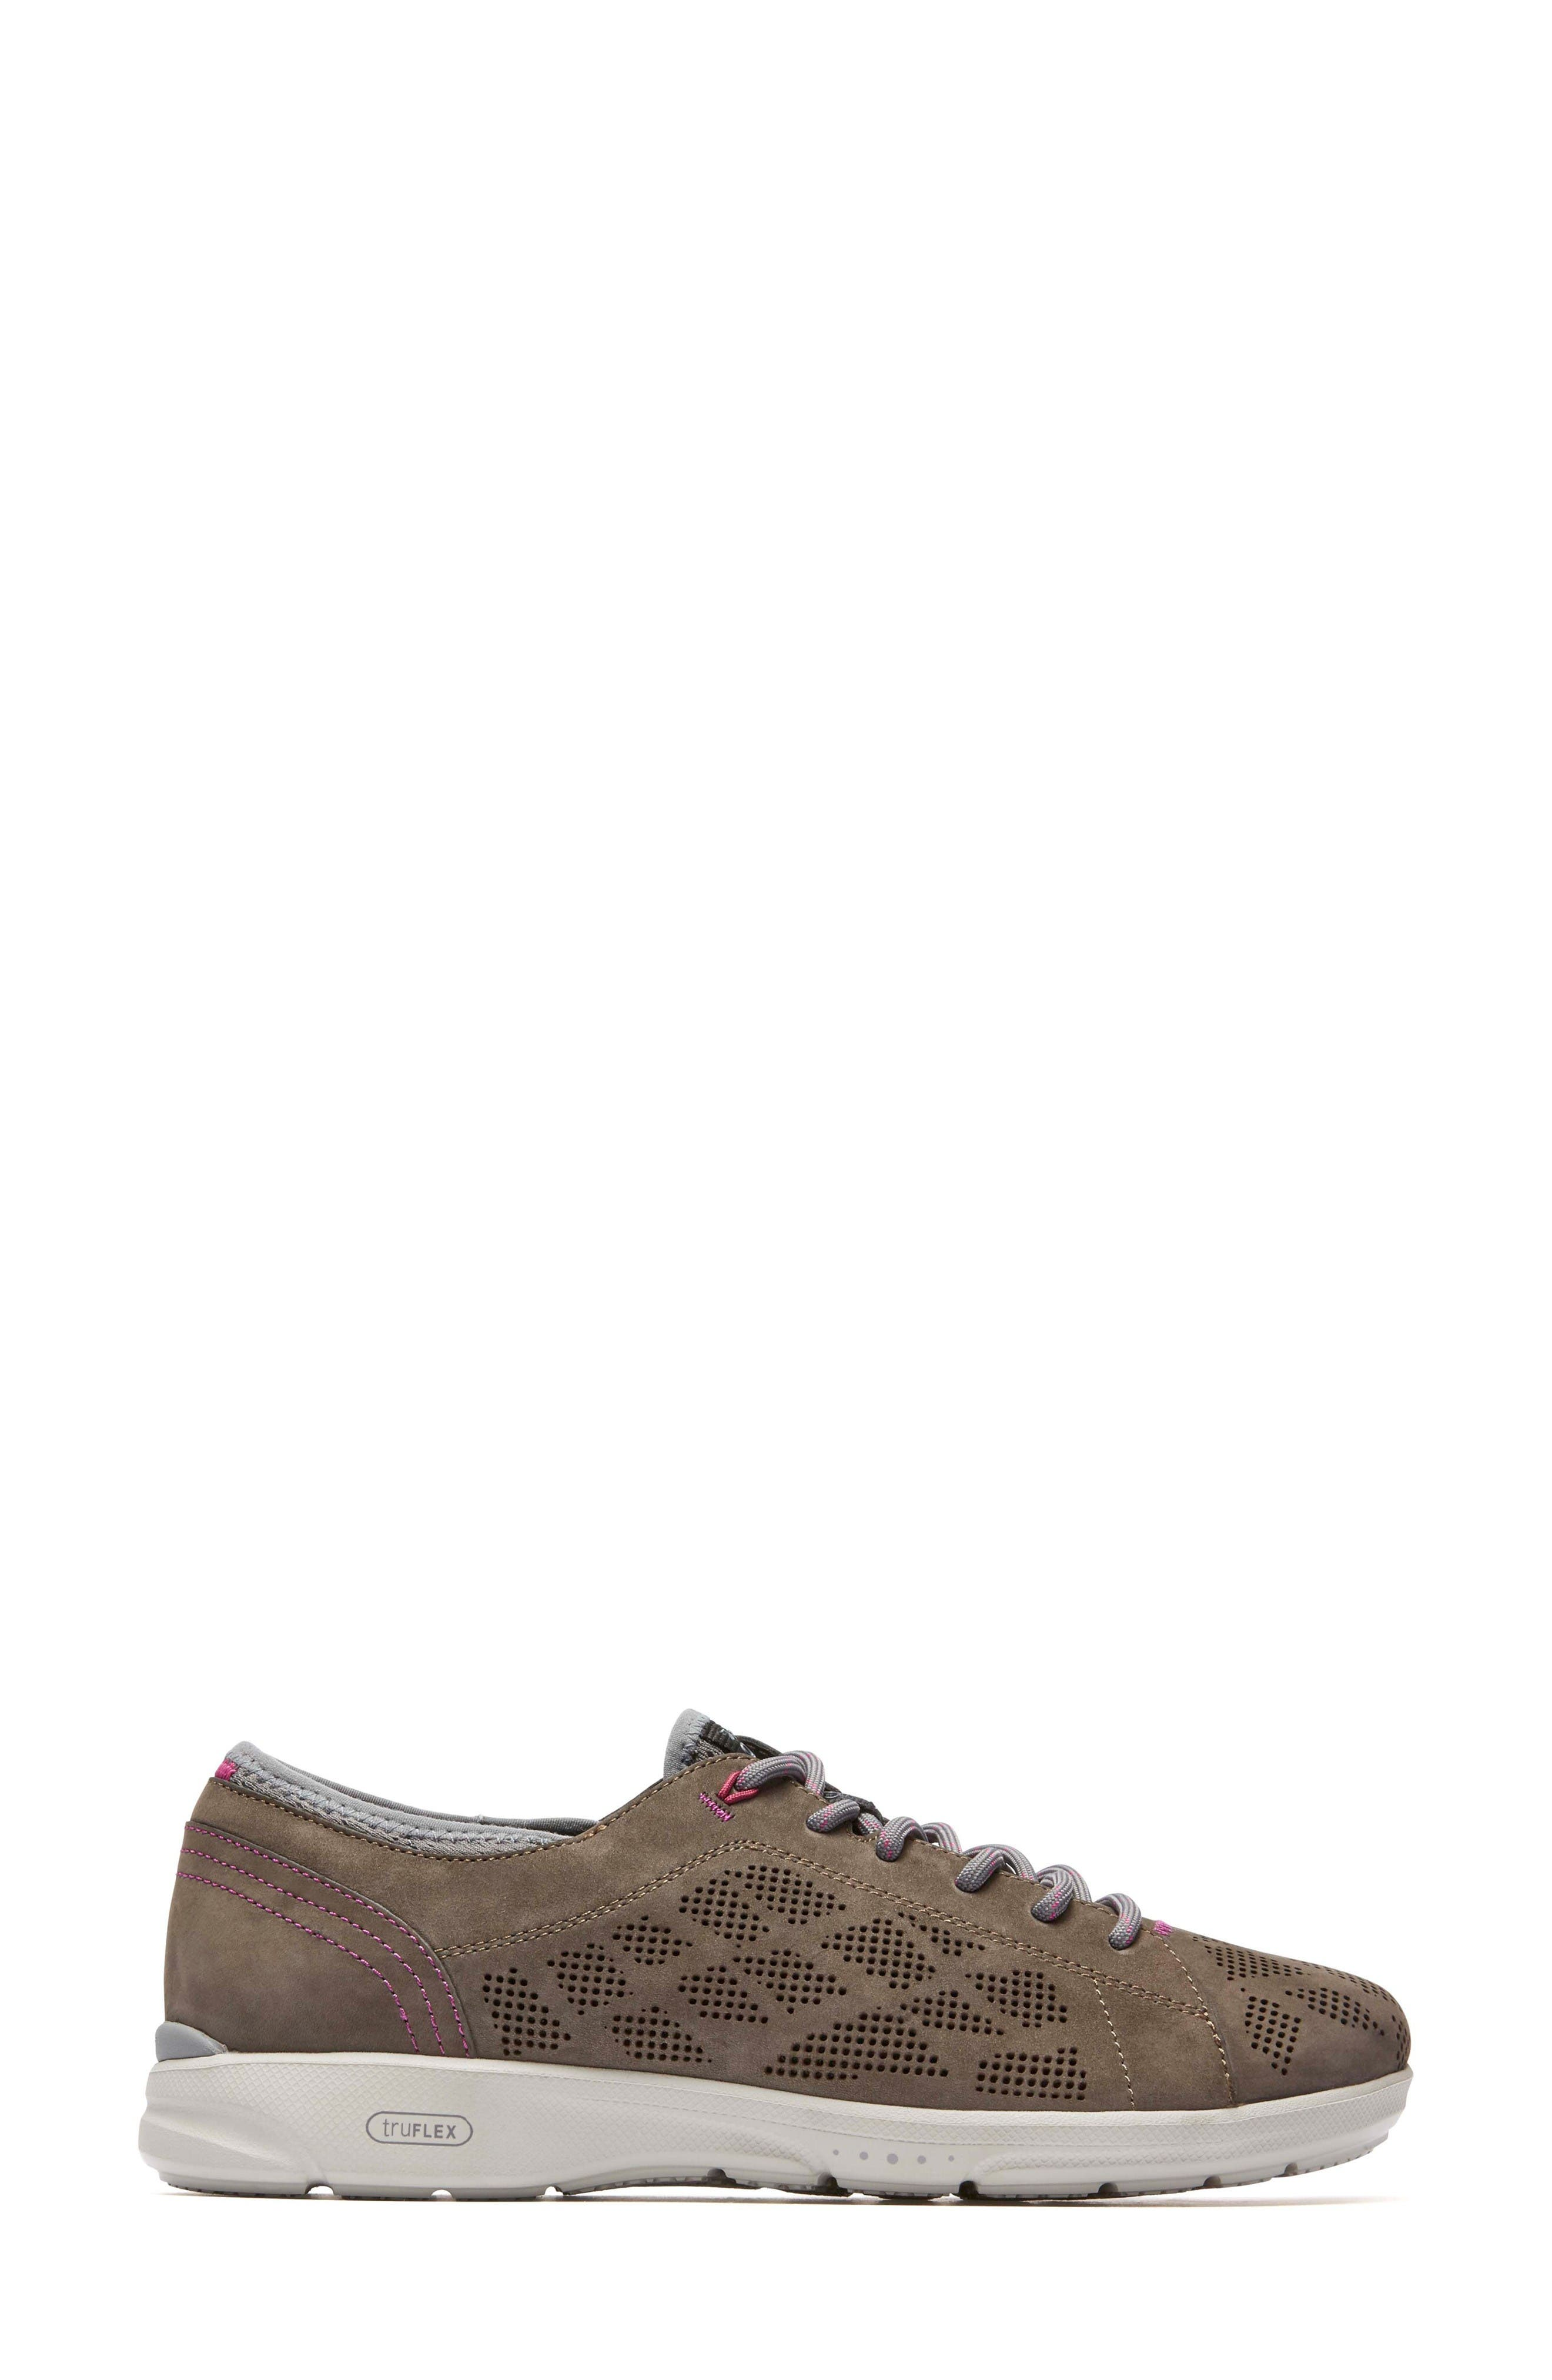 truFLEX Perforated Sneaker,                             Alternate thumbnail 3, color,                             Stone Leather